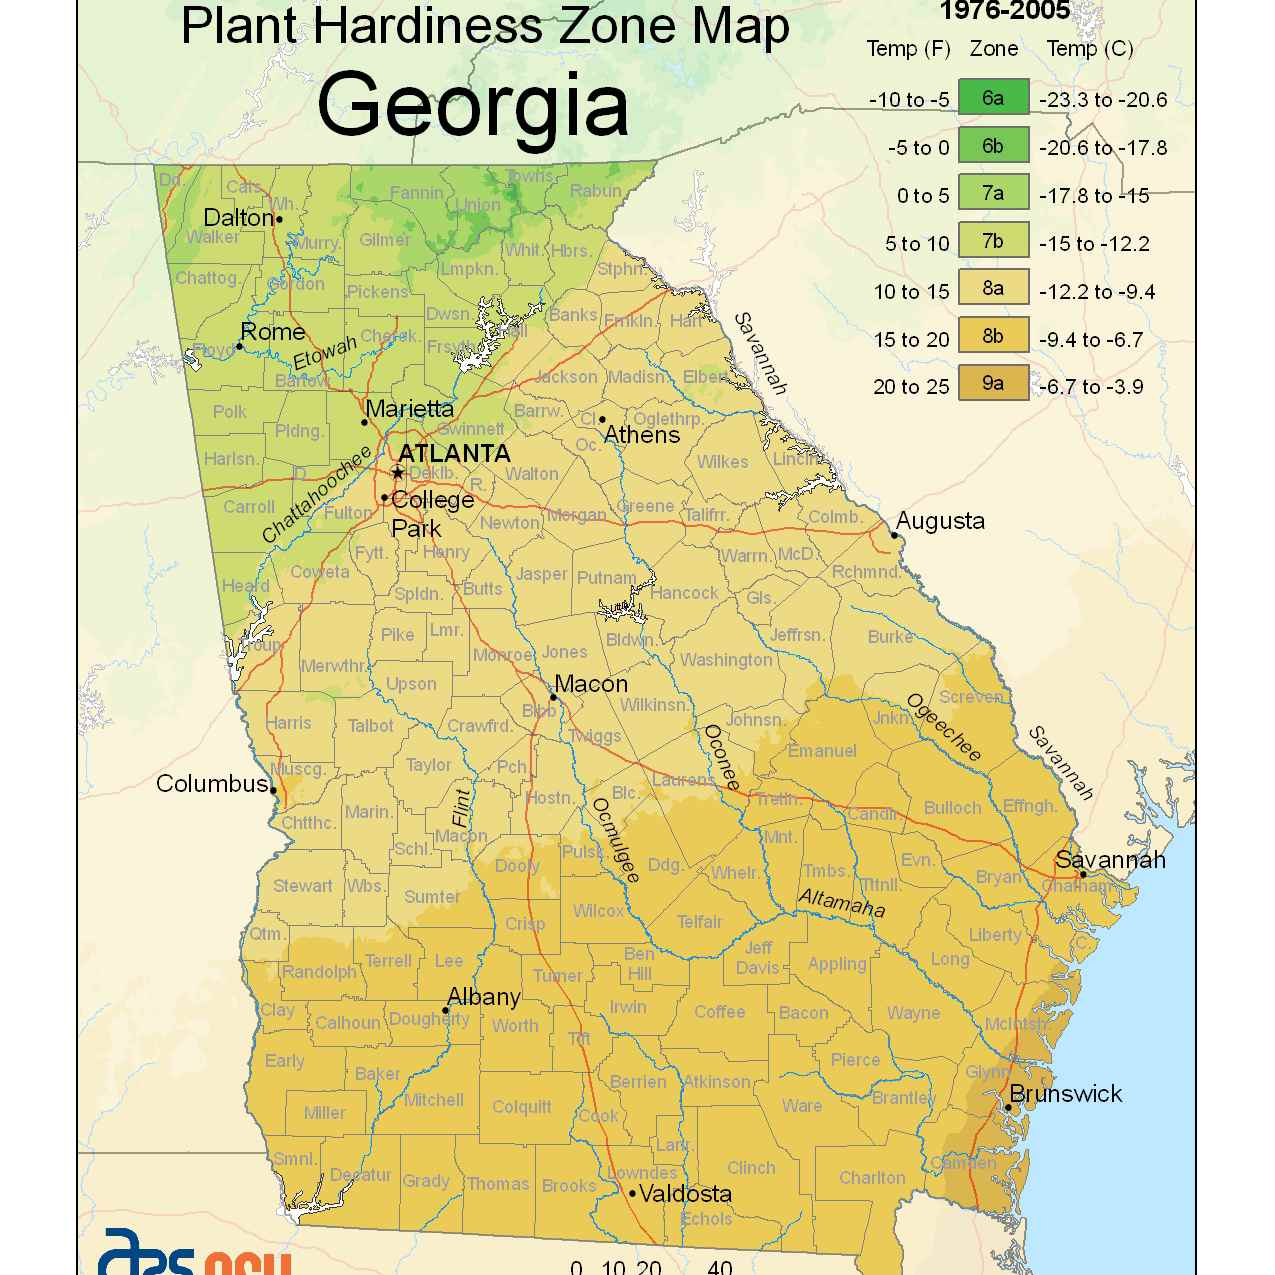 State Maps Of Usda Plant Hardiness Zones - Florida Growing Zones Map